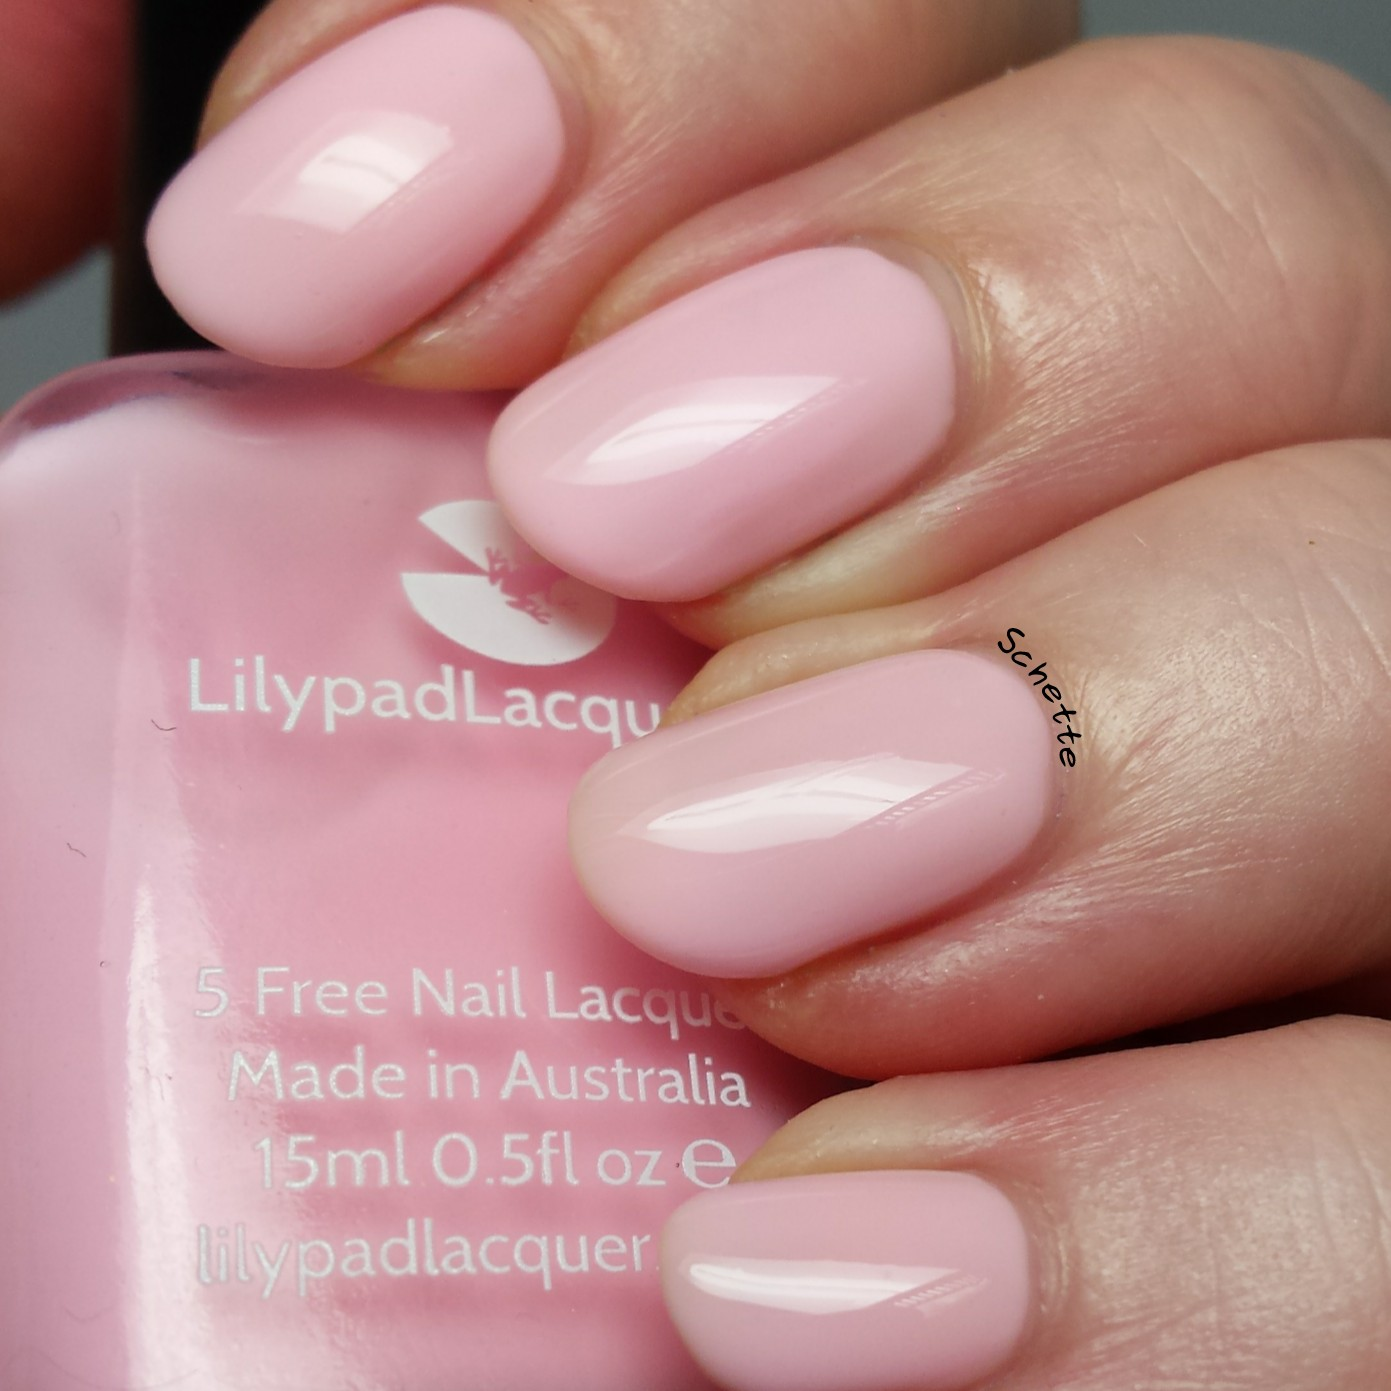 Lilypad Lacquer : The blush collection